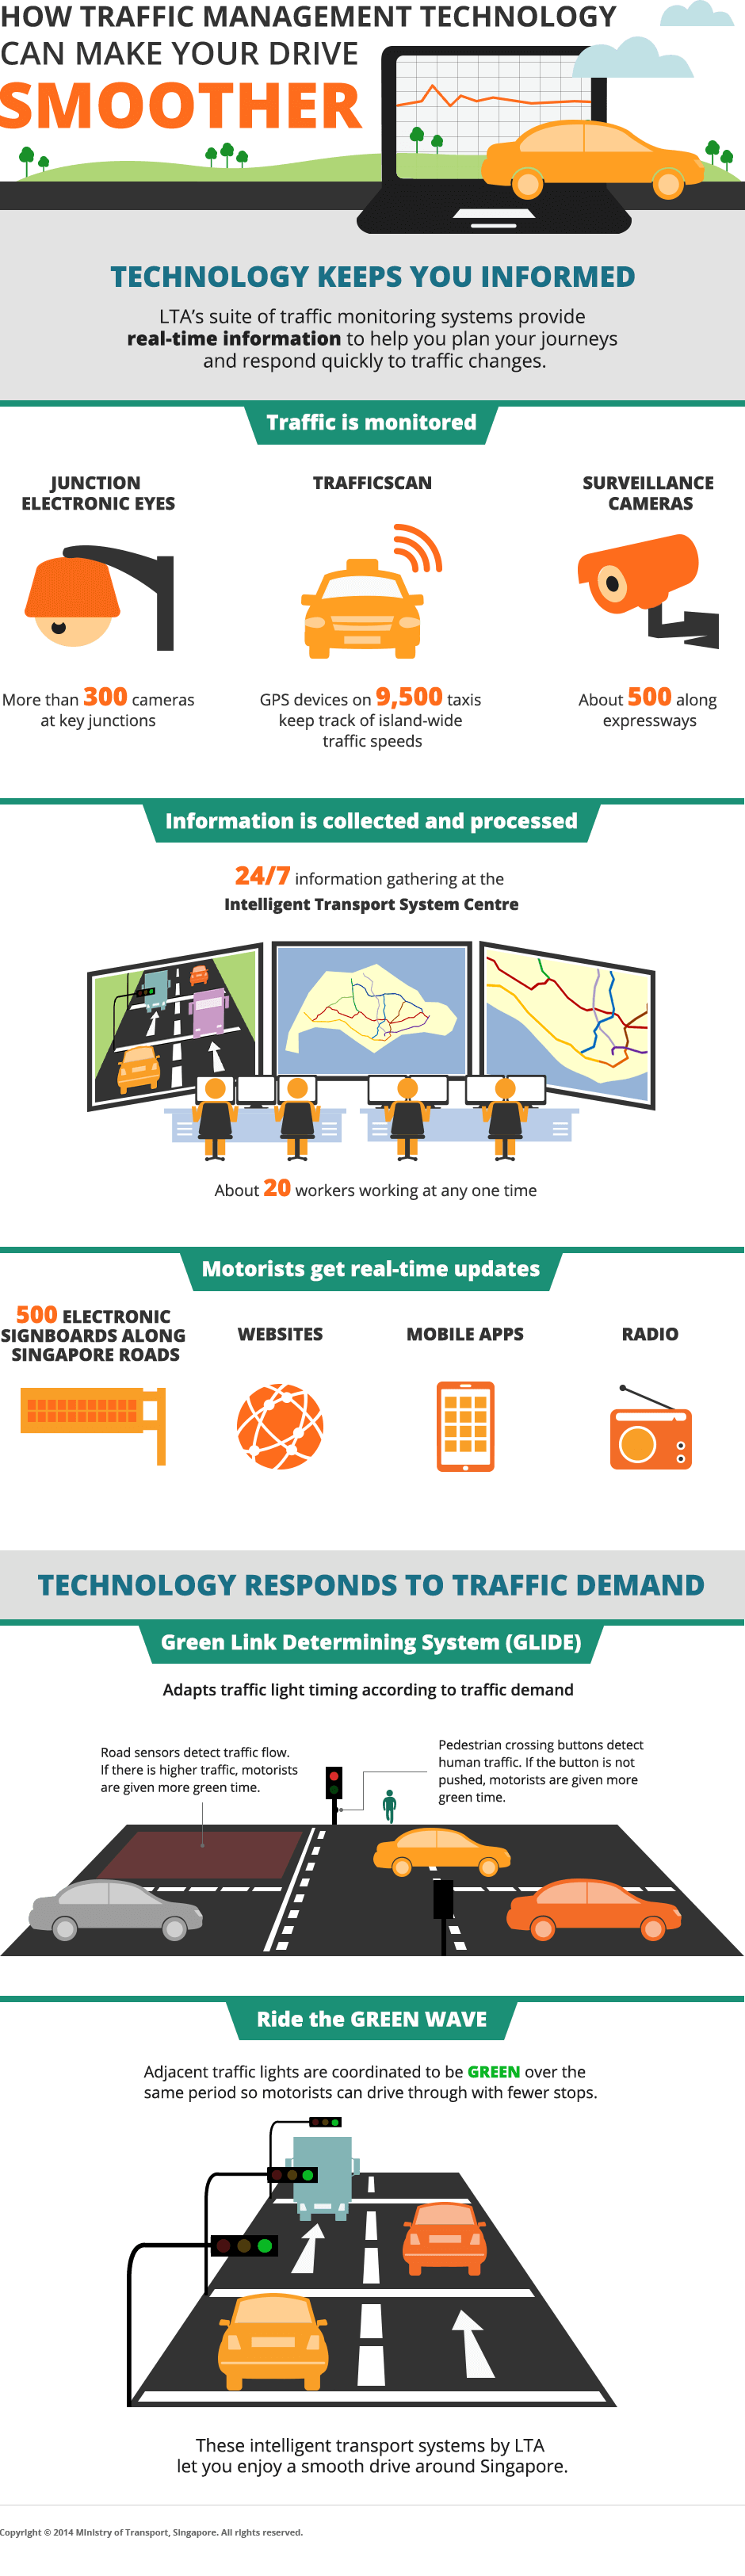 how traffic management technology can make driving smooth page infographic